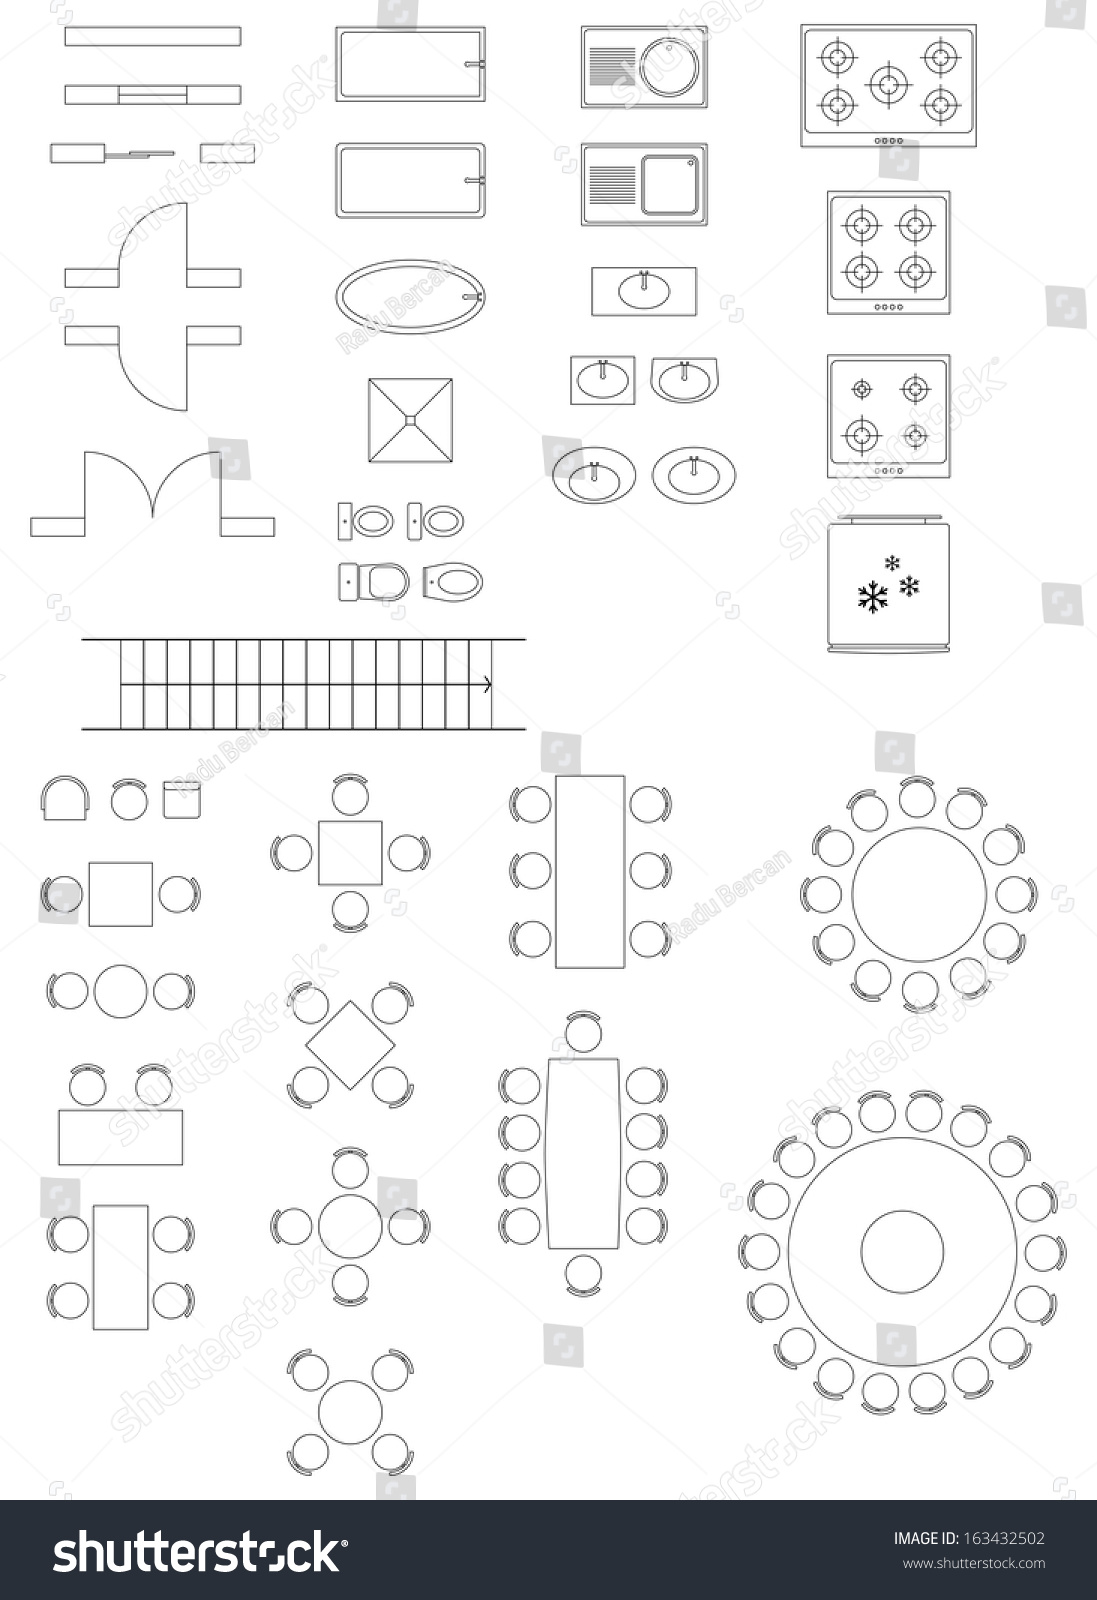 House Plan Symbols Vector,Plan.Home Plans Ideas Picture